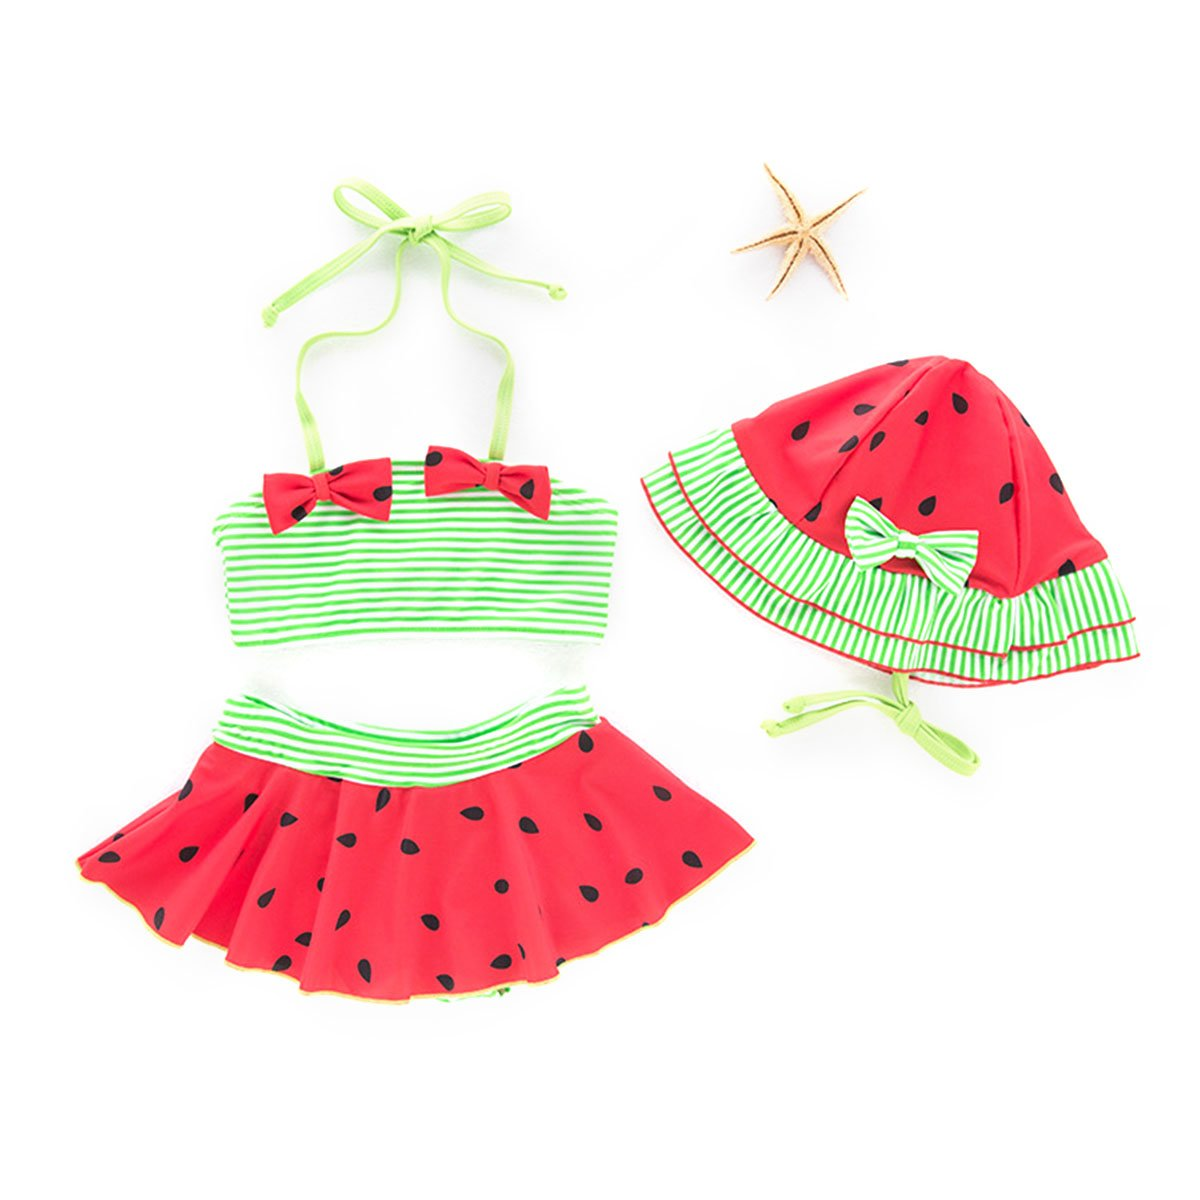 56f9eb9a71 Top 10 wholesale Cute 1 Pieces - Chinabrands.com